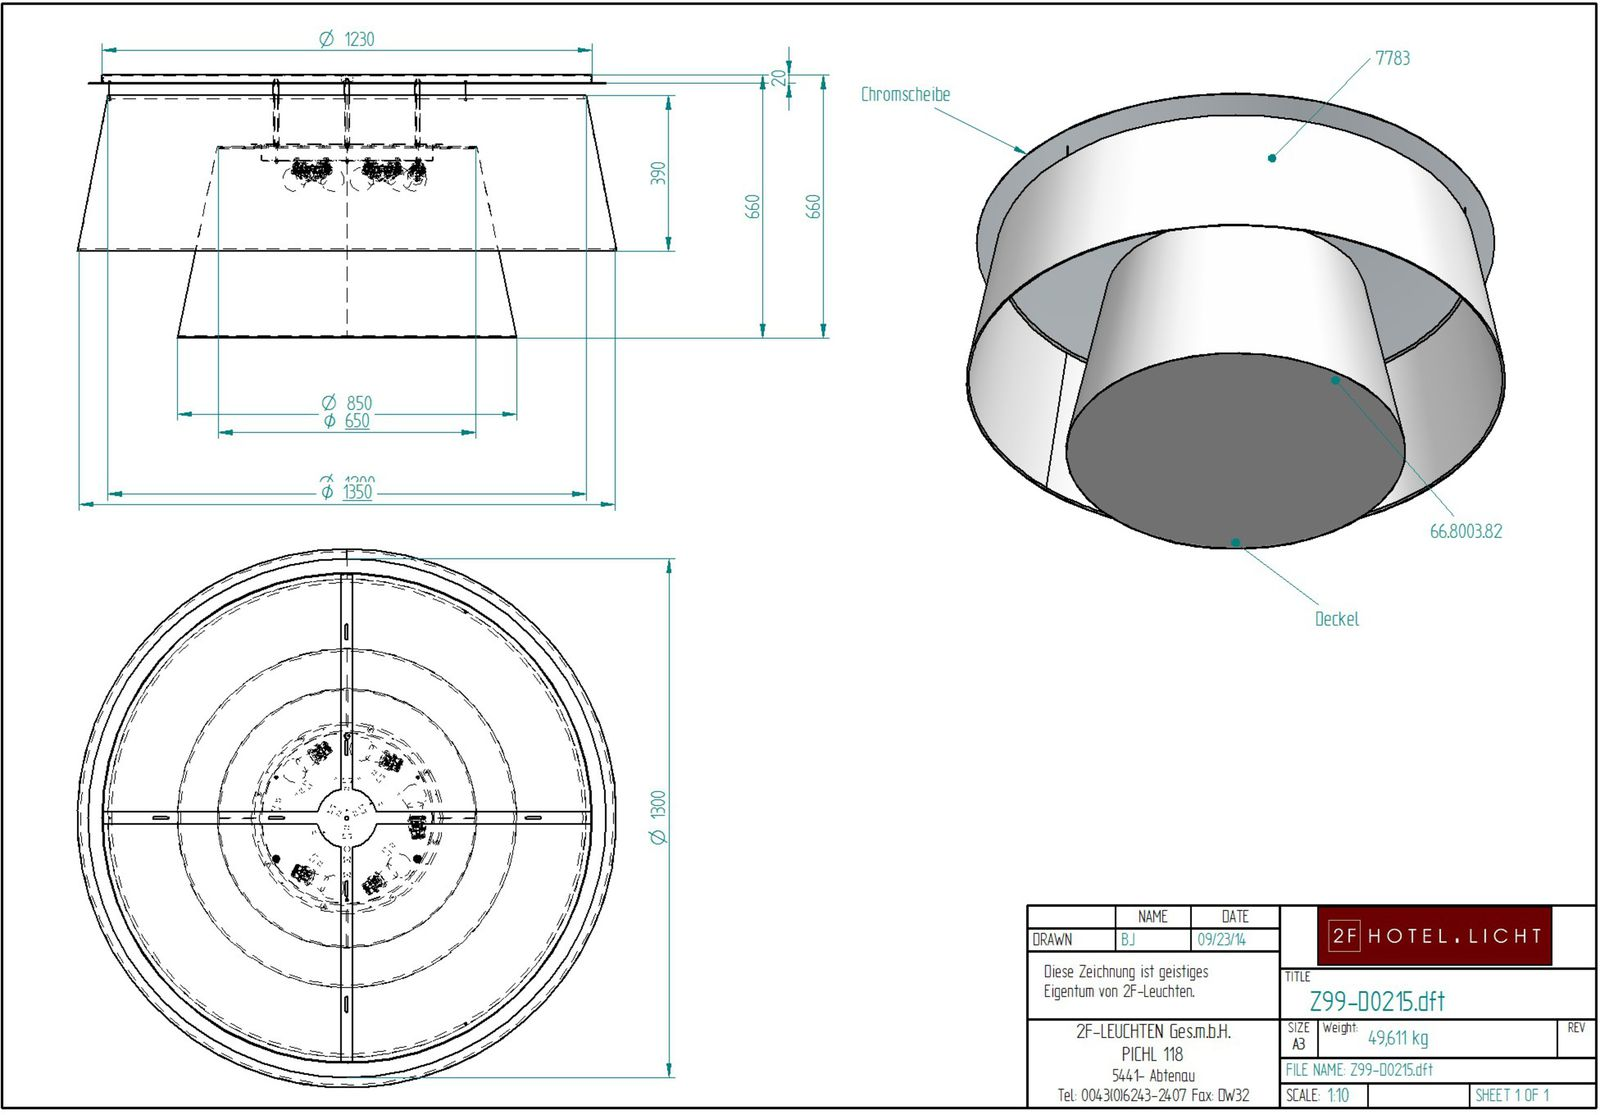 Ceiling Lamp, dimensions: L Ø1200mm, height=780mm, surface/colour: CR Chrom polished, RAL 9005, techn. Data: 5xE27, LED, 8,5W